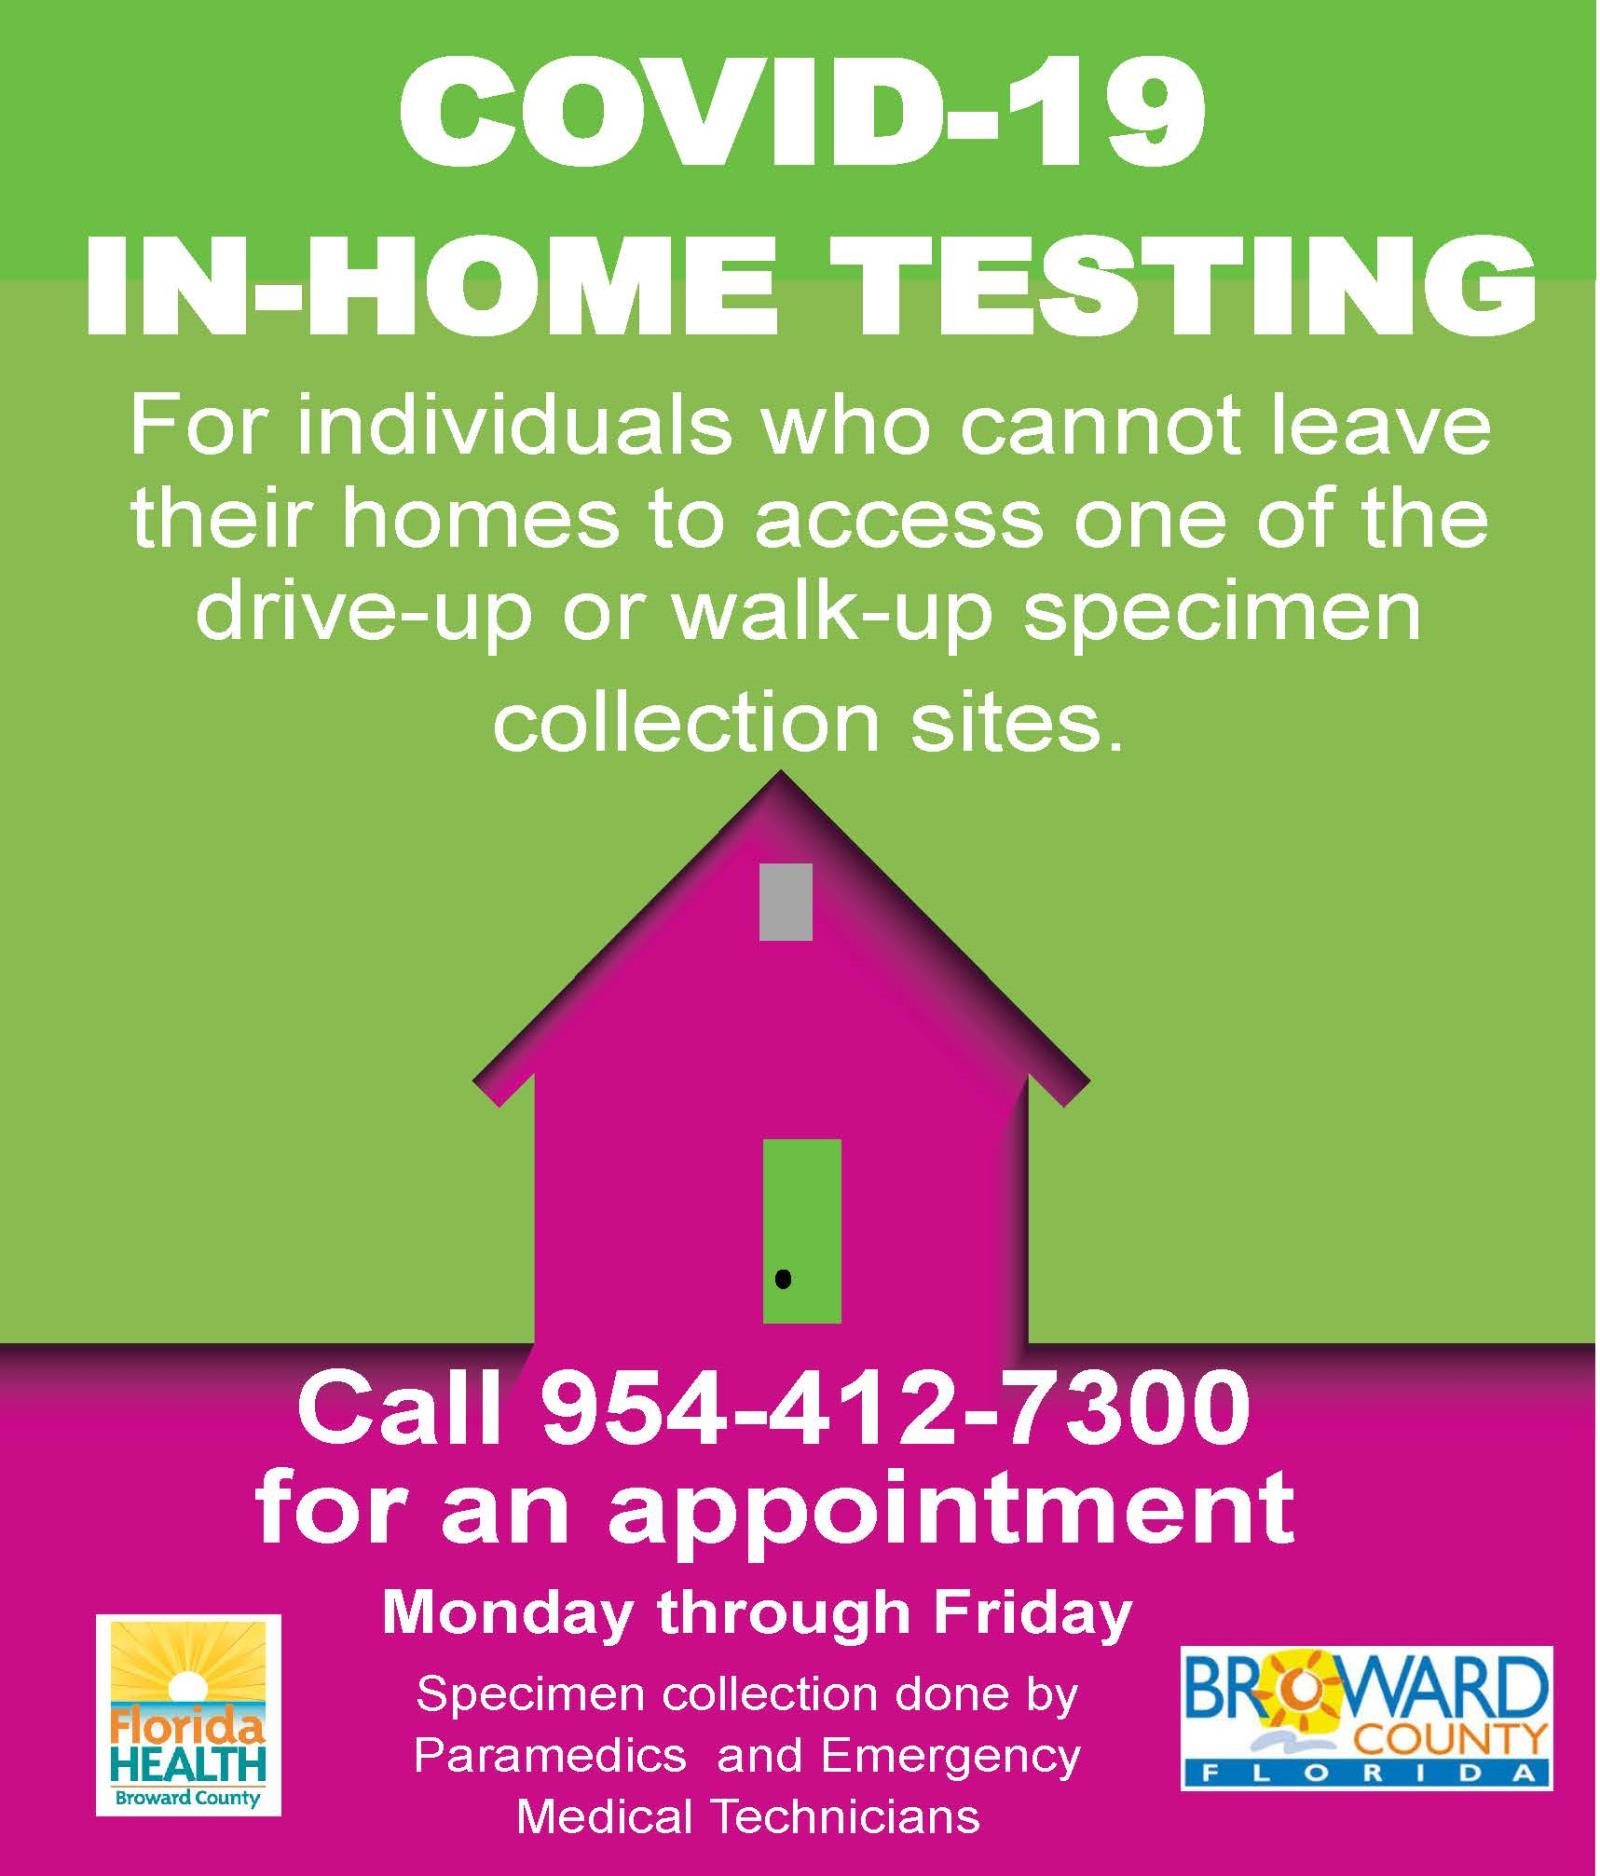 Broward County - COVID-19 In Home Mobile Testing Flyer